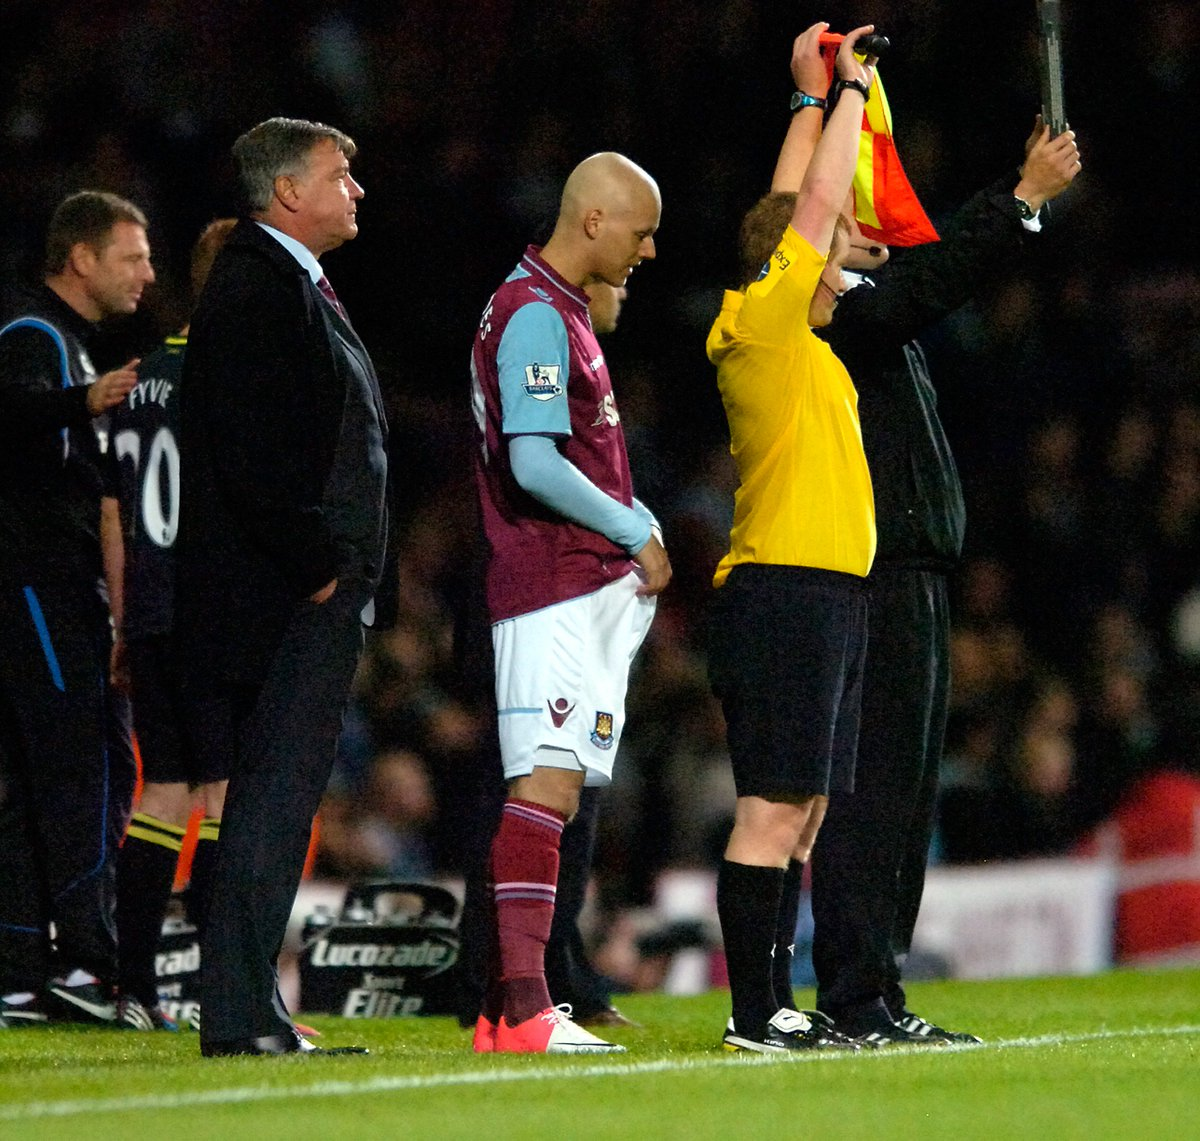 25 September 2012, West Ham United vs Wigan Athletic 84 Dylan Tombides comes on to make his debut for West Ham United. Six years ago today, a very special moment. RIP Dylan.